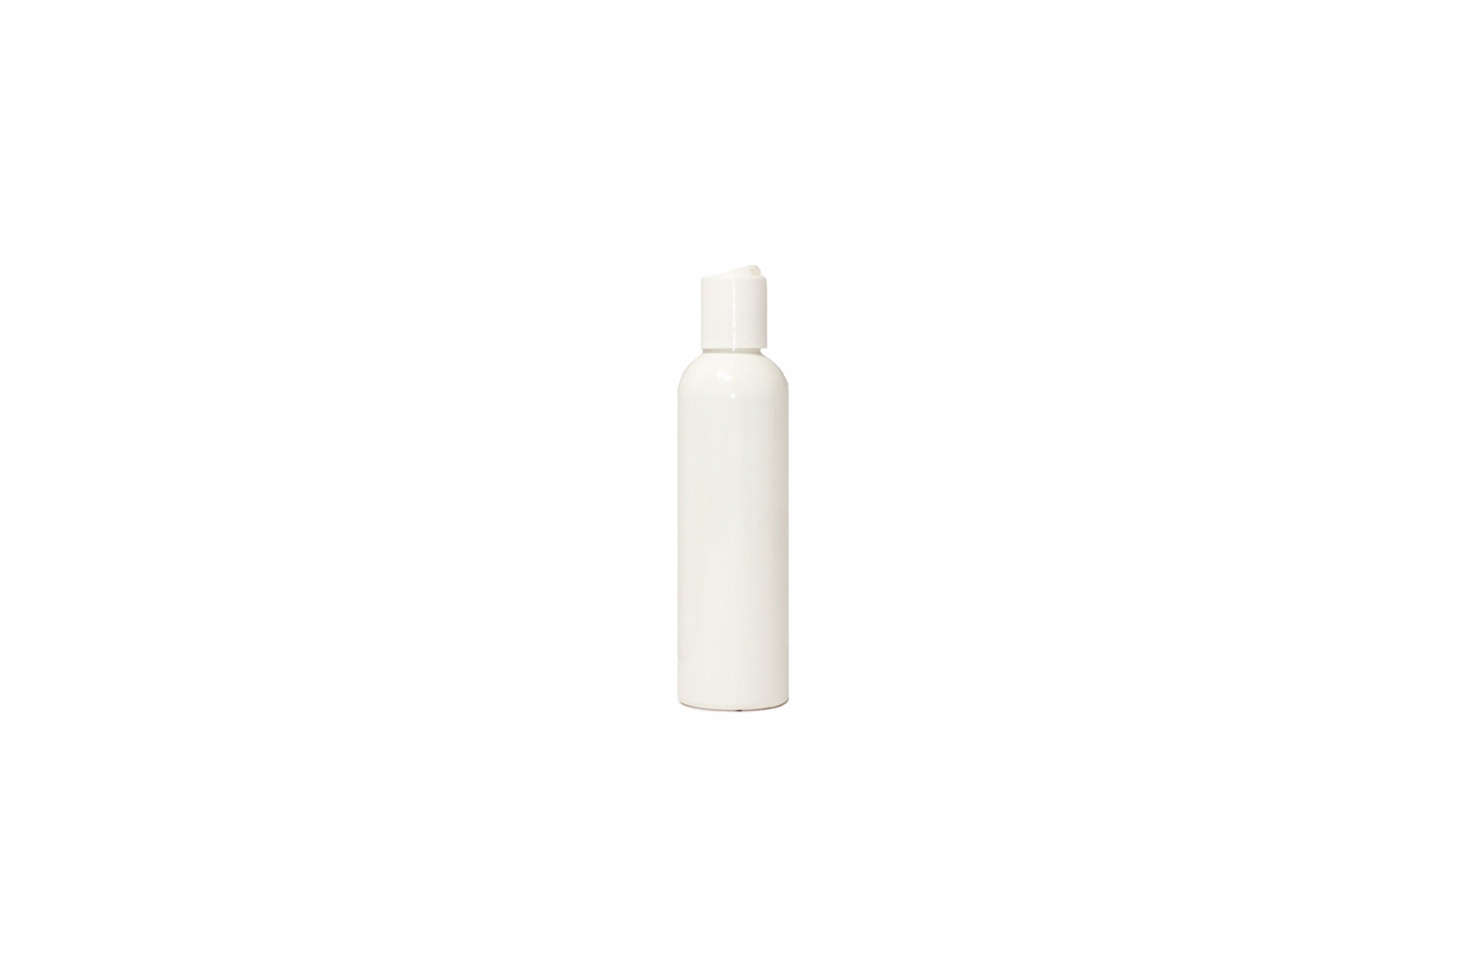 The Tall PET Bullet Bottle Smooth White Disc with Dispenser Screw Cap is $ for a case of  on Amazon.